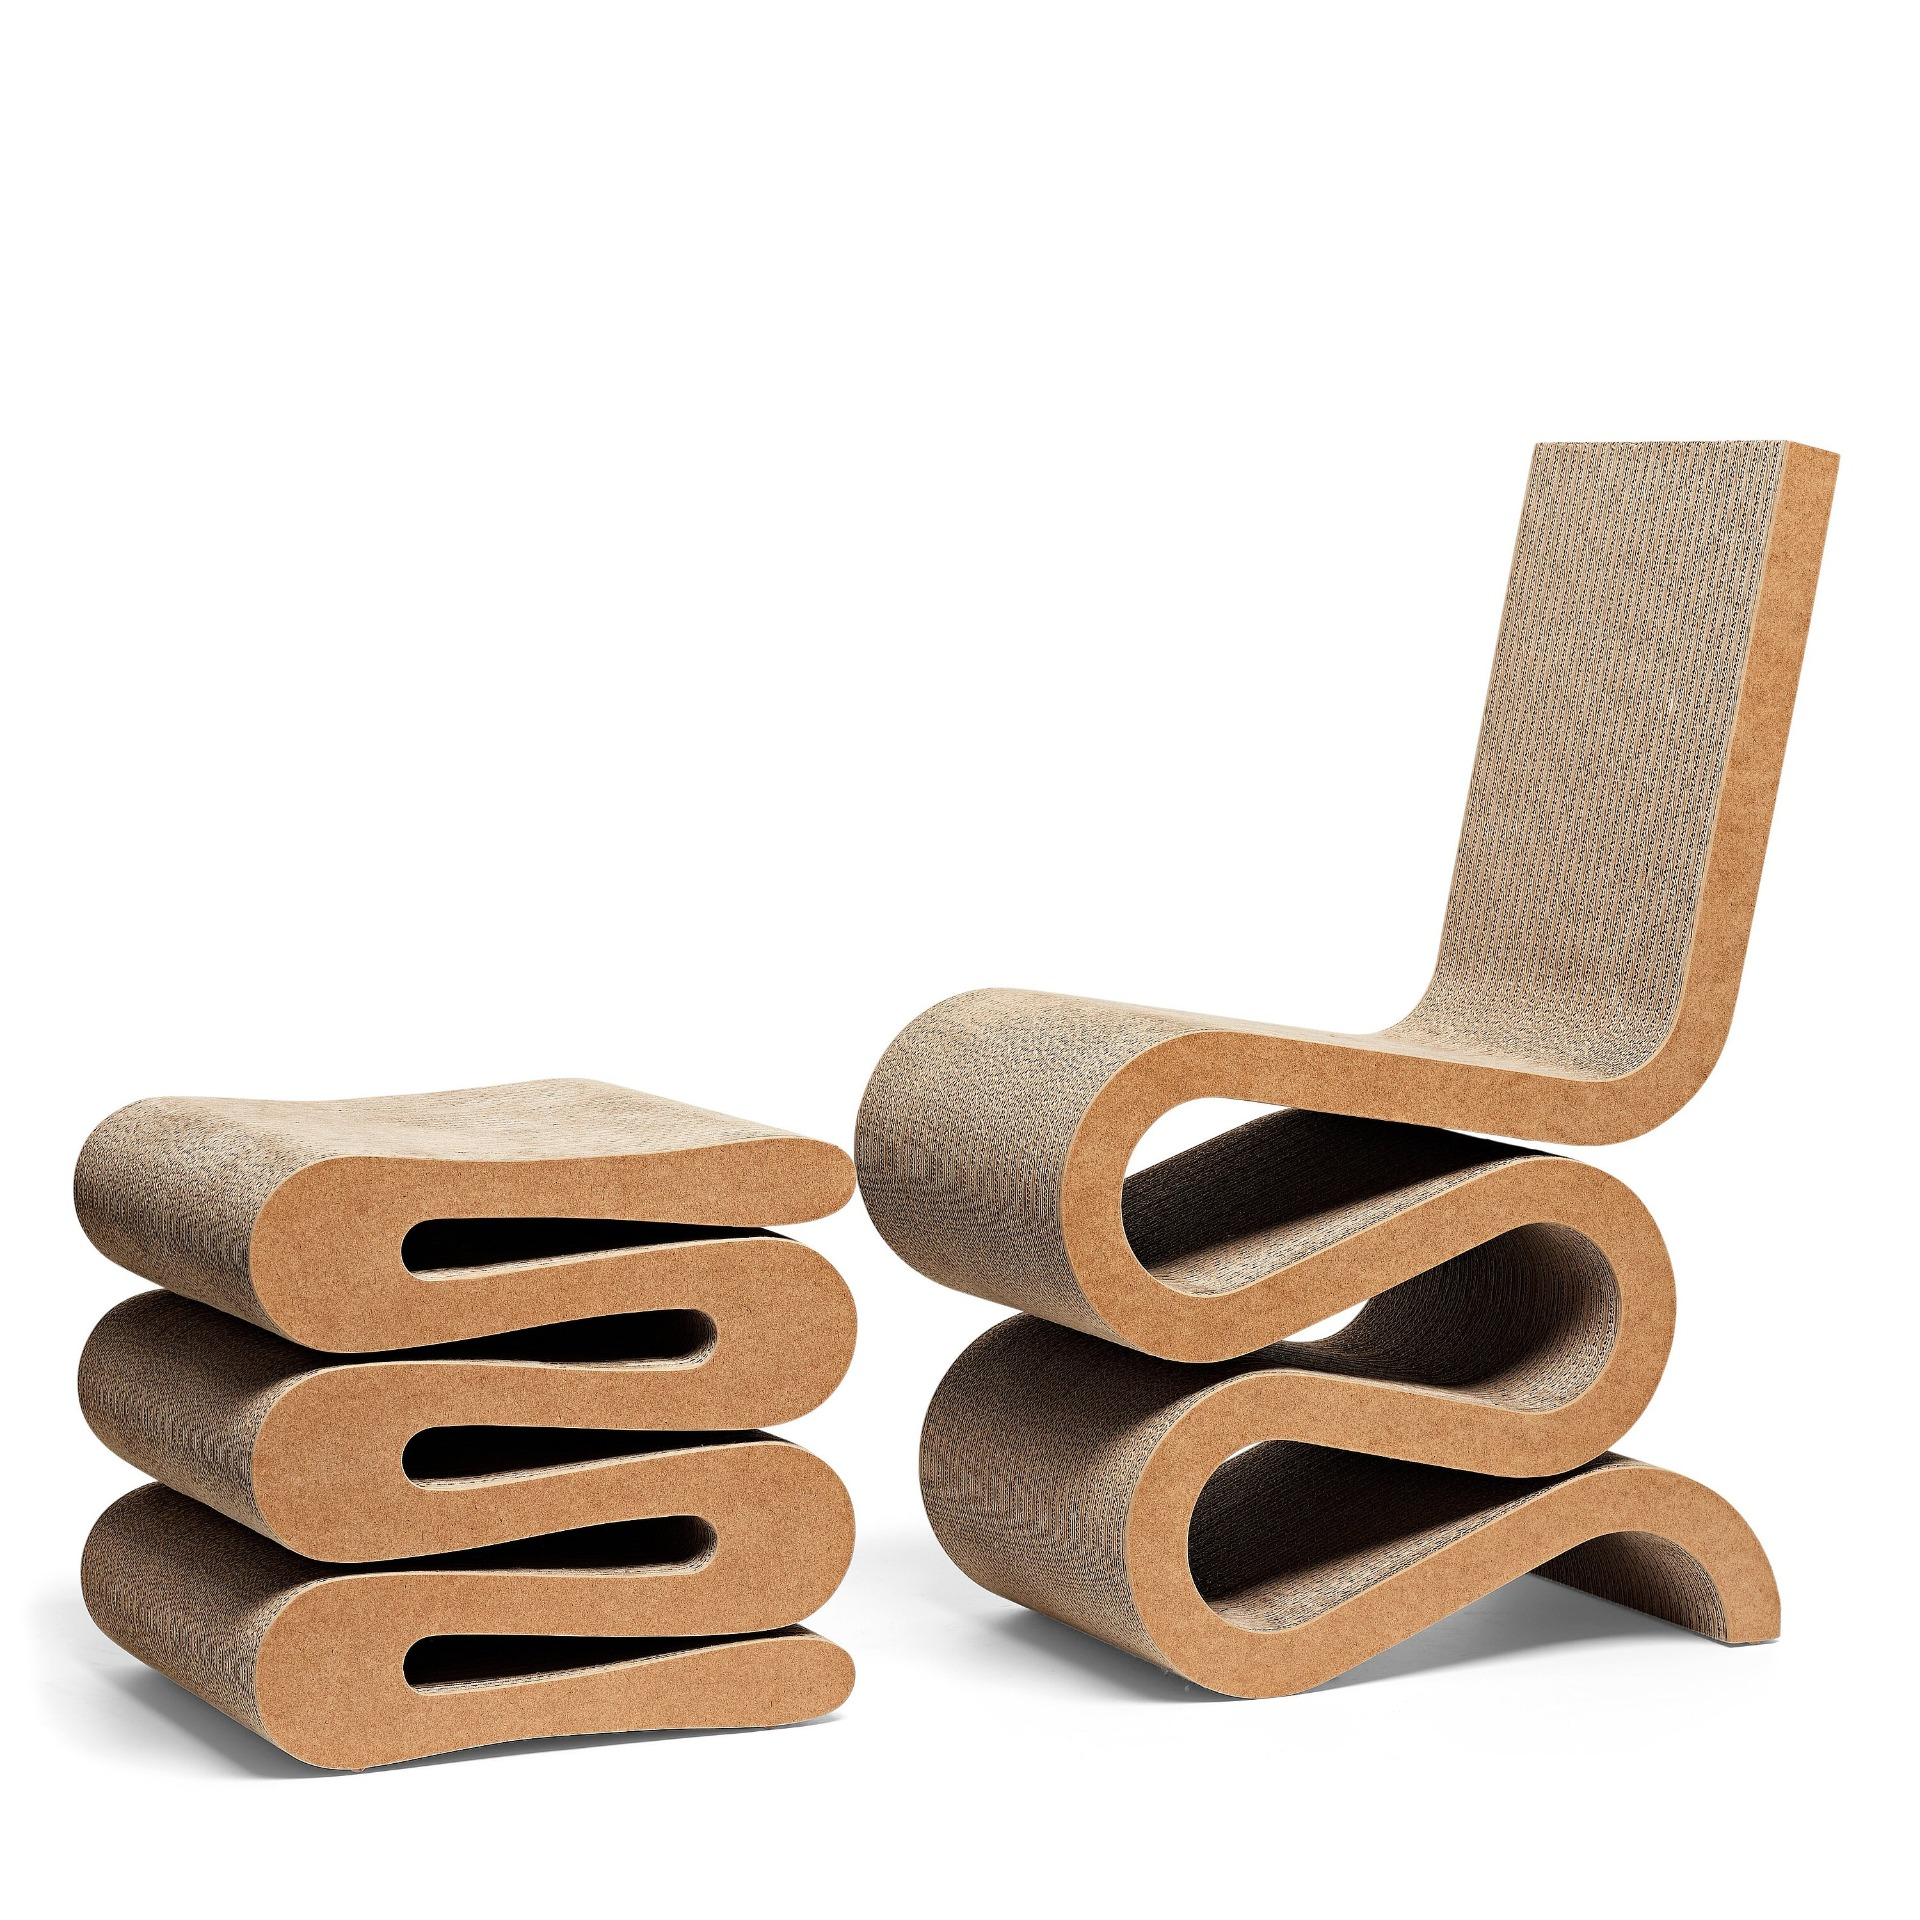 Iconic Chairs: The Top 10 Chairs Designed By Architects iconic chairs Iconic Chairs: The Top 10 Chairs Designed By Architects Wiggle Chair Frank Gehry